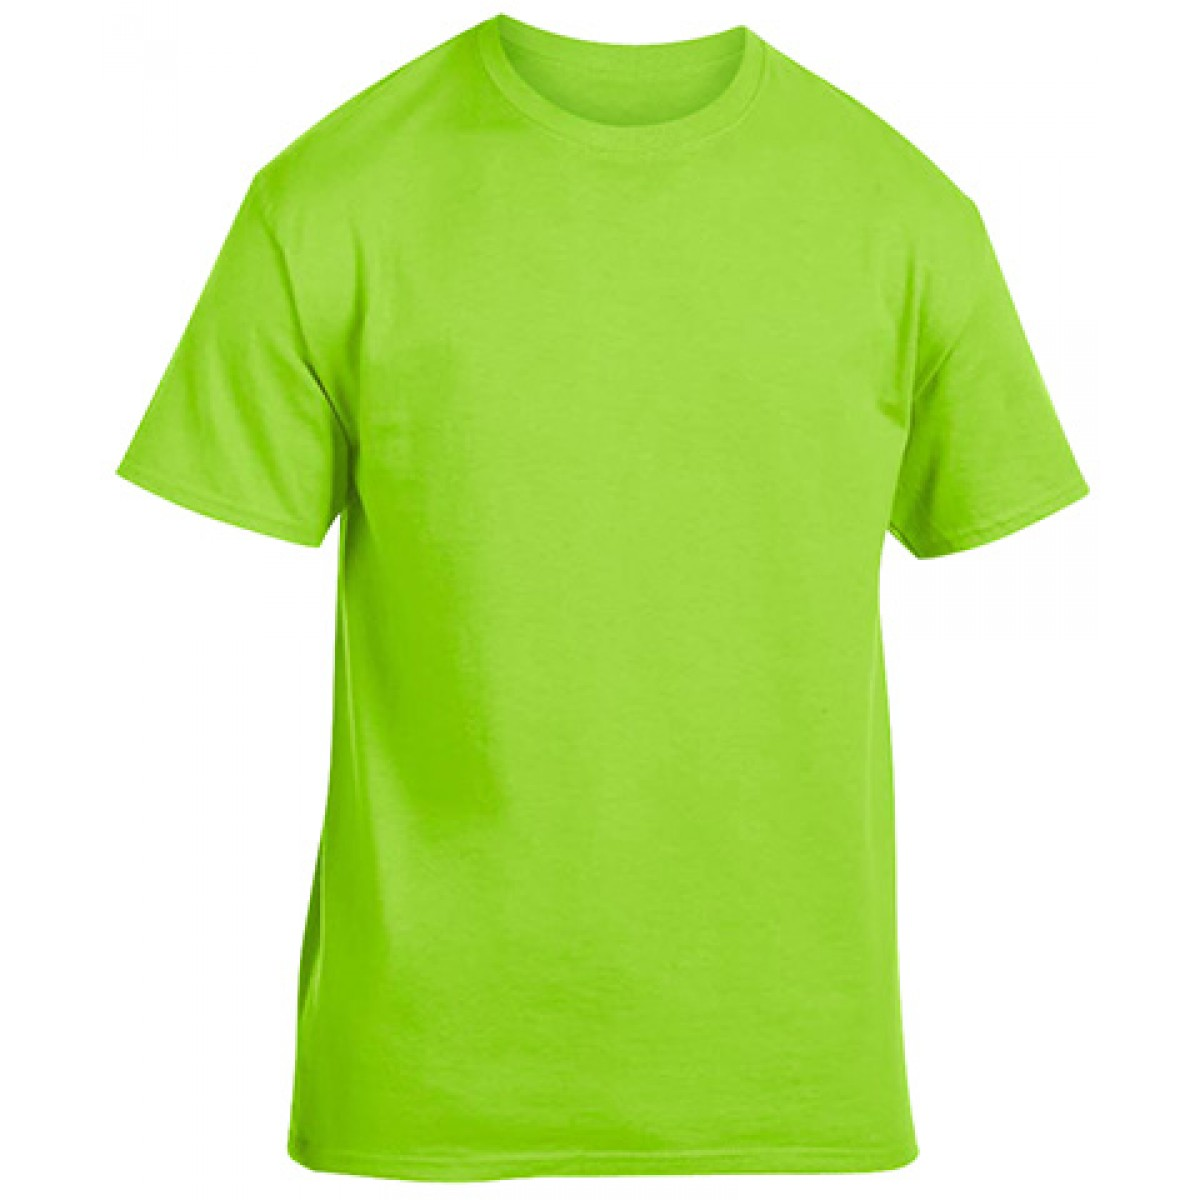 Soft 100% Cotton T-Shirt-Lime Green-XL